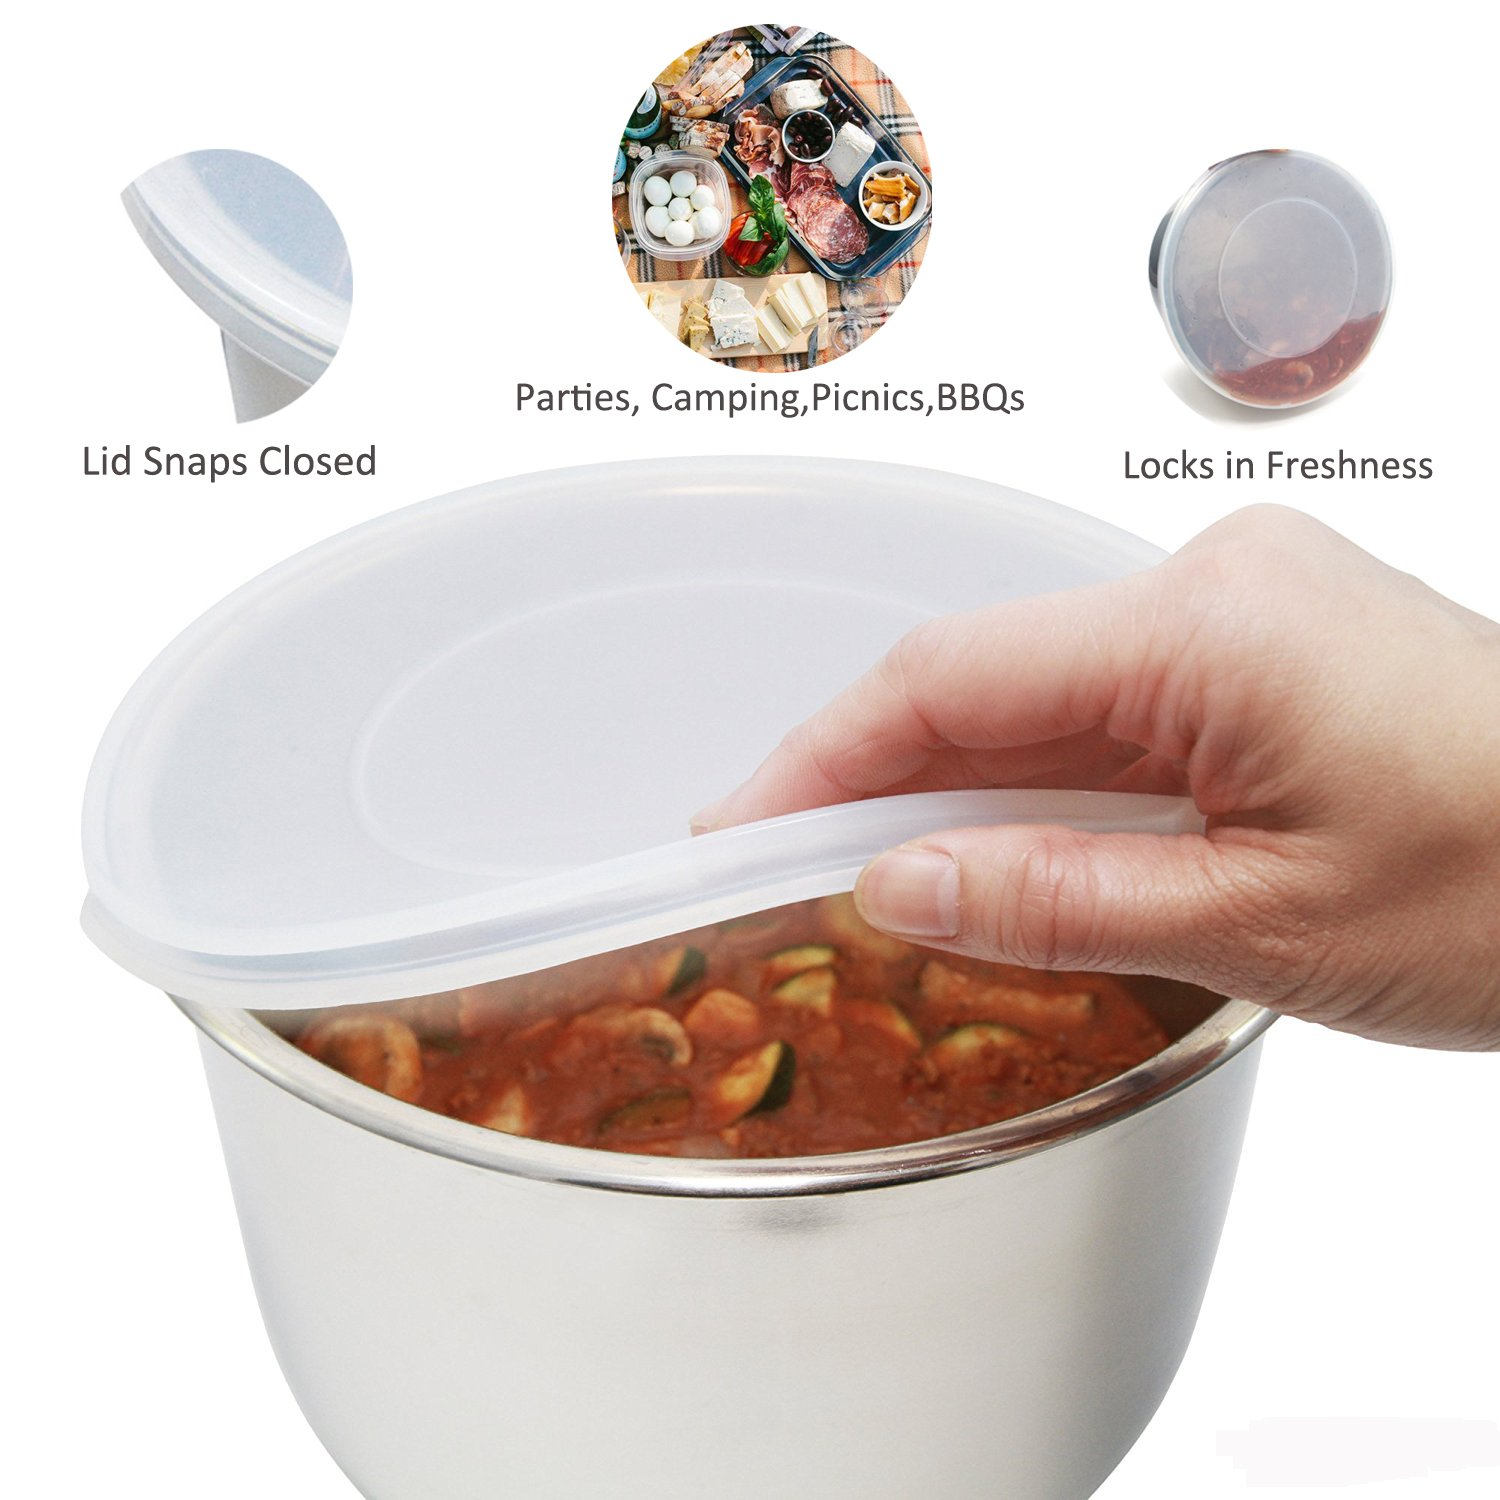 Silicone Lid Cover Fits 5 or 6 Quart, STYDDI Silicone Cover for Instant Pot Inner Pots Fits IP-DUO60, IP-LUX60, IP-DUO50, IP-LUX50, Smart-60, IP-CSG60 and IP-CSG50 by STYDDI (Image #3)